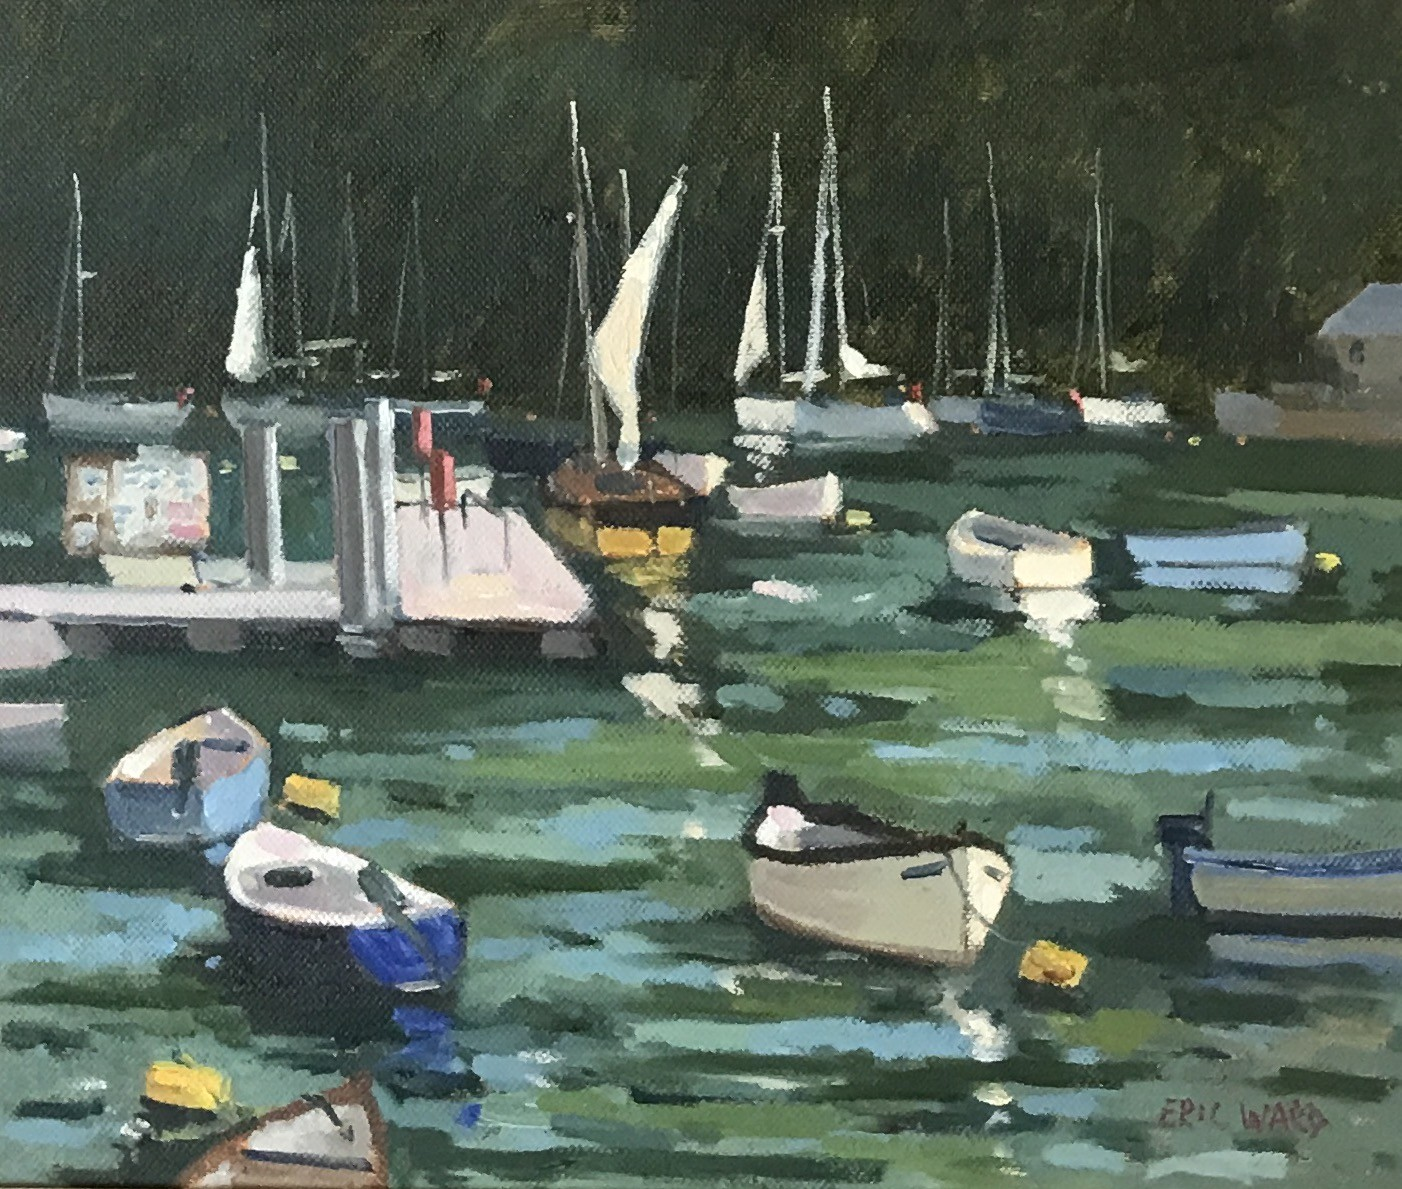 "<span class=""link fancybox-details-link""><a href=""/artists/29-eric-ward-%28b.1945%29/works/25-eric-ward-b.1945-sailing-boats-by-the-jetty/"">View Detail Page</a></span><div class=""artist""><strong>Eric Ward (b.1945)</strong></div> <div class=""title""><em>Sailing Boats by the Jetty</em></div> <div class=""medium"">Oil on canvas (framed)</div> <div class=""dimensions"">41 x 45 cm</div><div class=""price"">£850.00</div>"